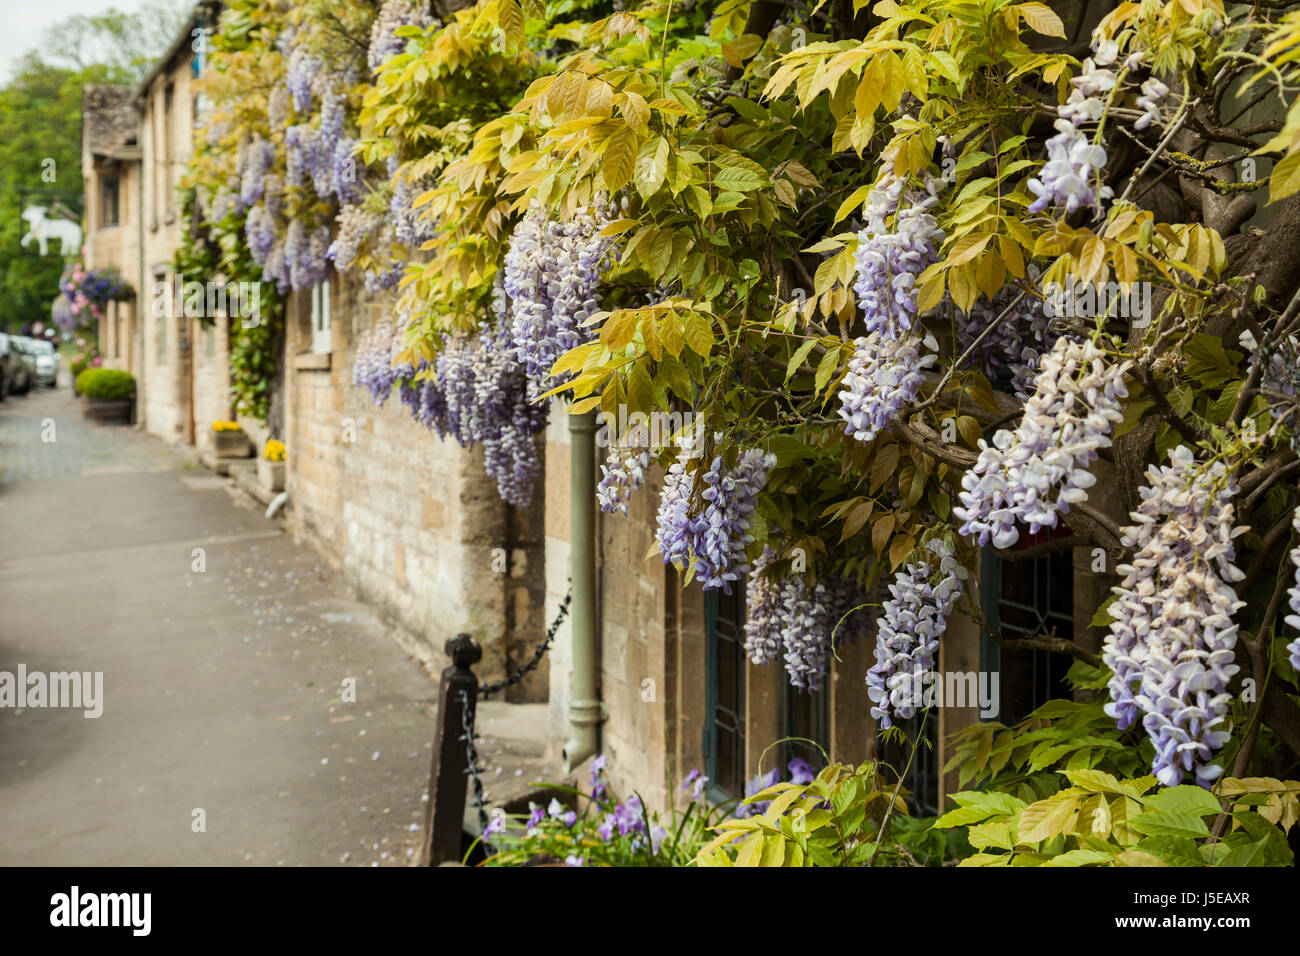 Wisteria flowers adorning a house in the Cotswold town of  Burford, Oxfordshire, England. - Stock Image